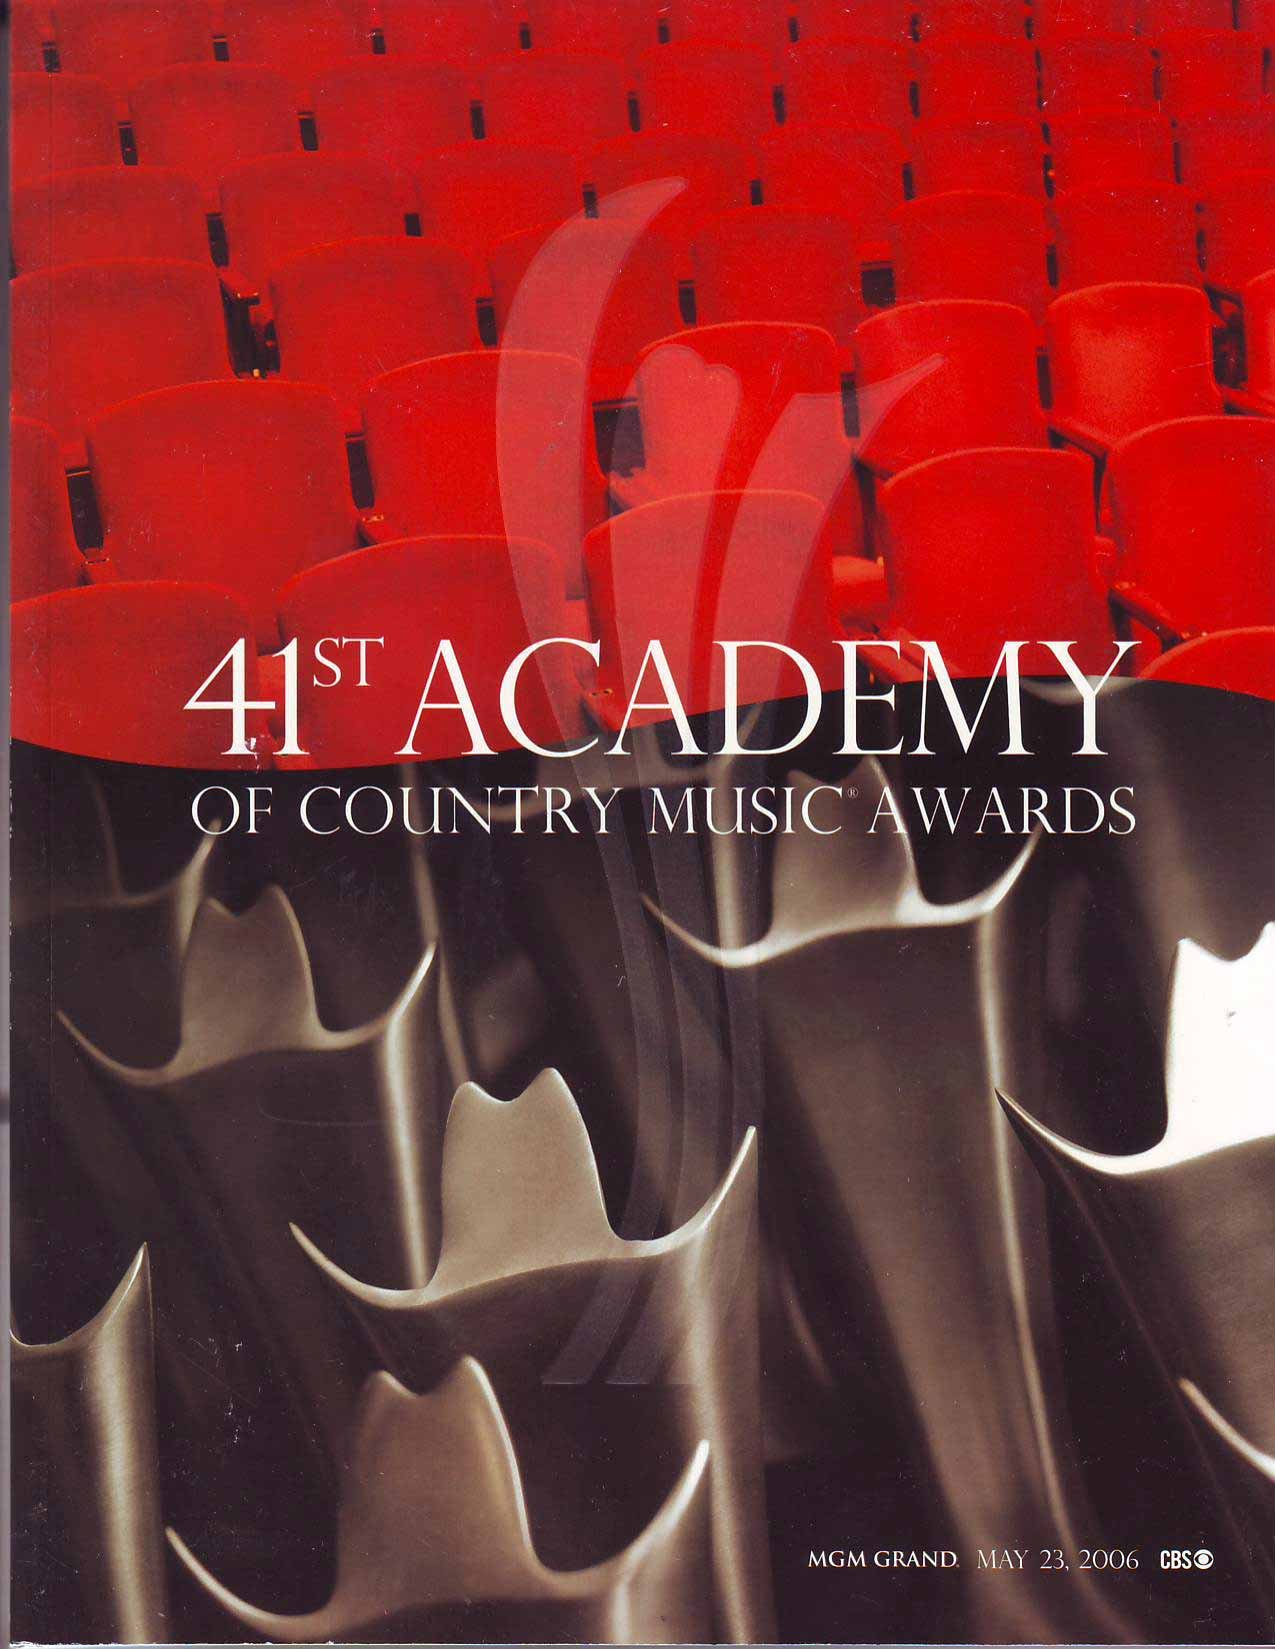 41st Academy of Country of Country Music Award: MGM Grand May 23, 2006 pdf